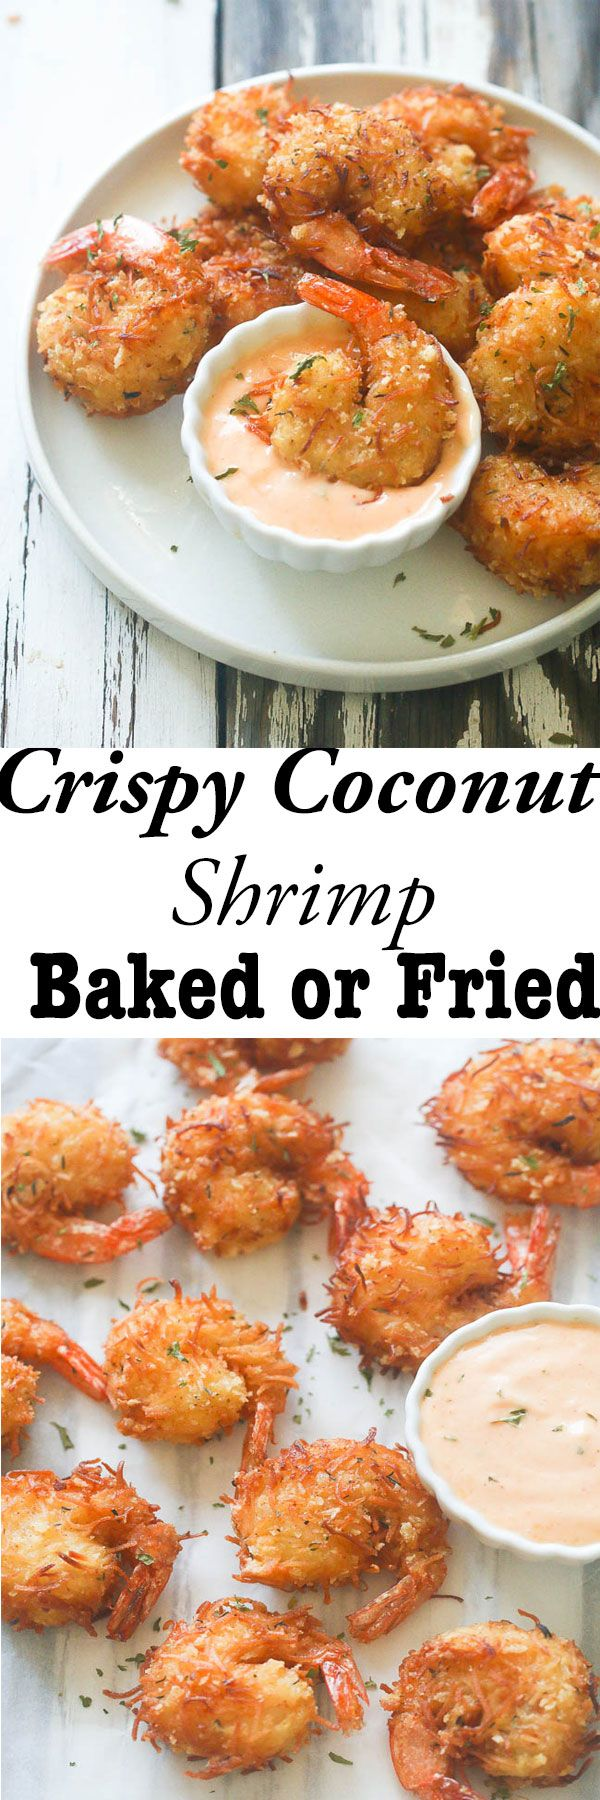 Crispy Coconut Shrimp- Fresh Shrimp dipped in coconut batter , then rolled in an aromatic combination of coconut flakes, breadcrumbs and spices . So Decadent, So Exotic , So Tasty !!  Baked or Fried